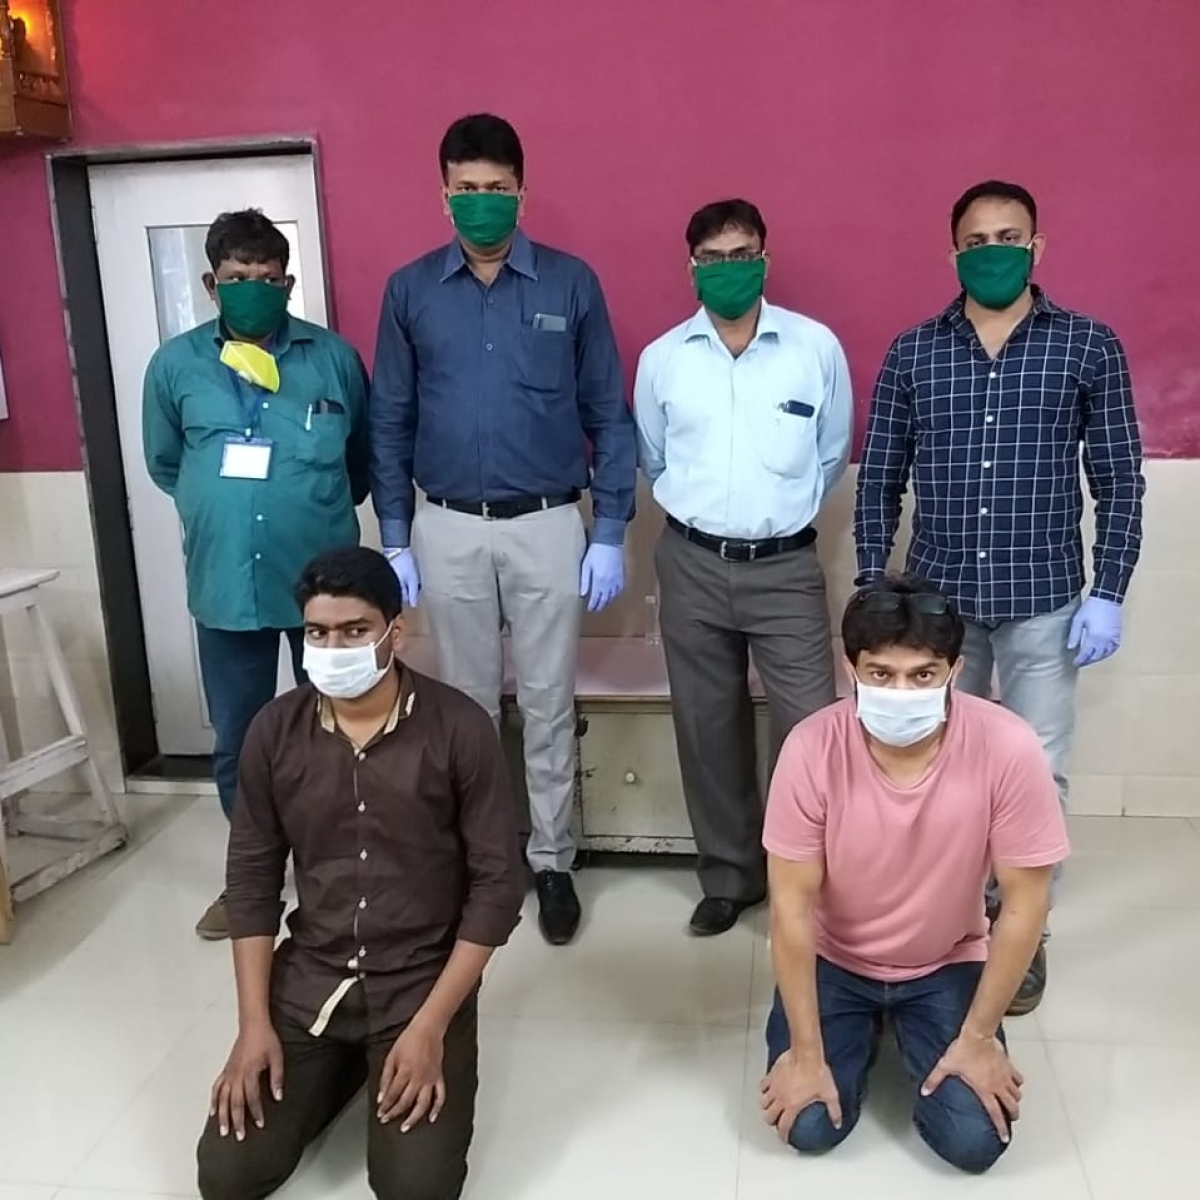 Coronavirus in Mumbai: Masks, hand sanitizers and PPE kits worth more than Rs 1 crore seized in Andheri